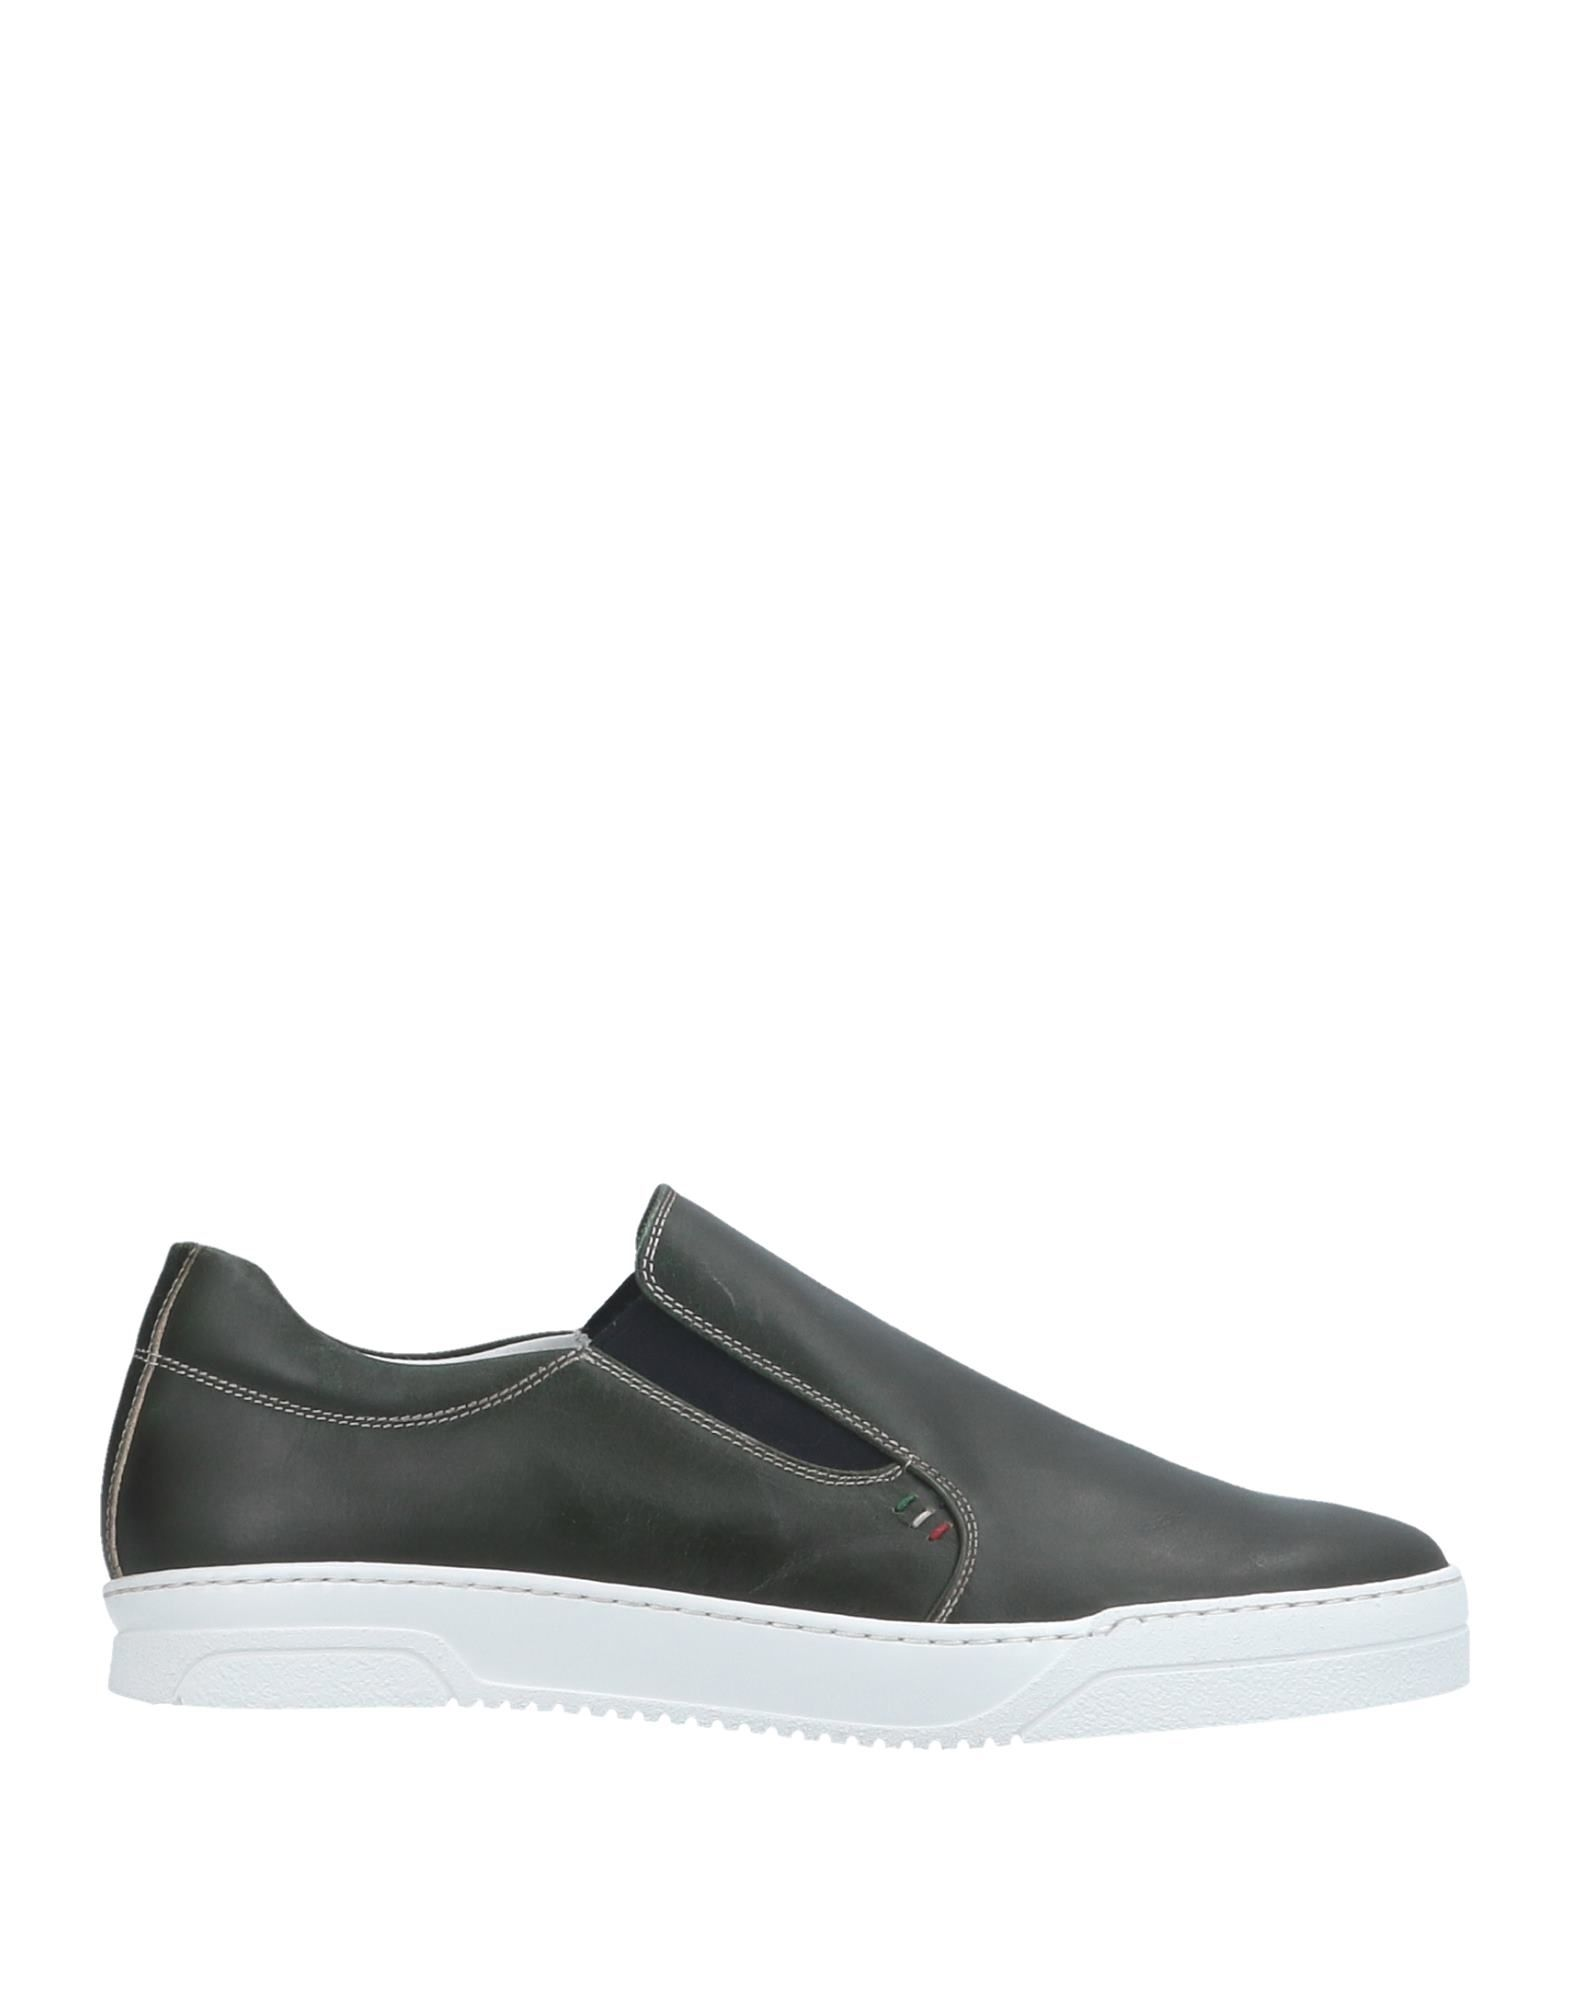 Sneakers Gianfranco Lattanzi Homme - Sneakers Gianfranco Lattanzi  Noir Super rabais